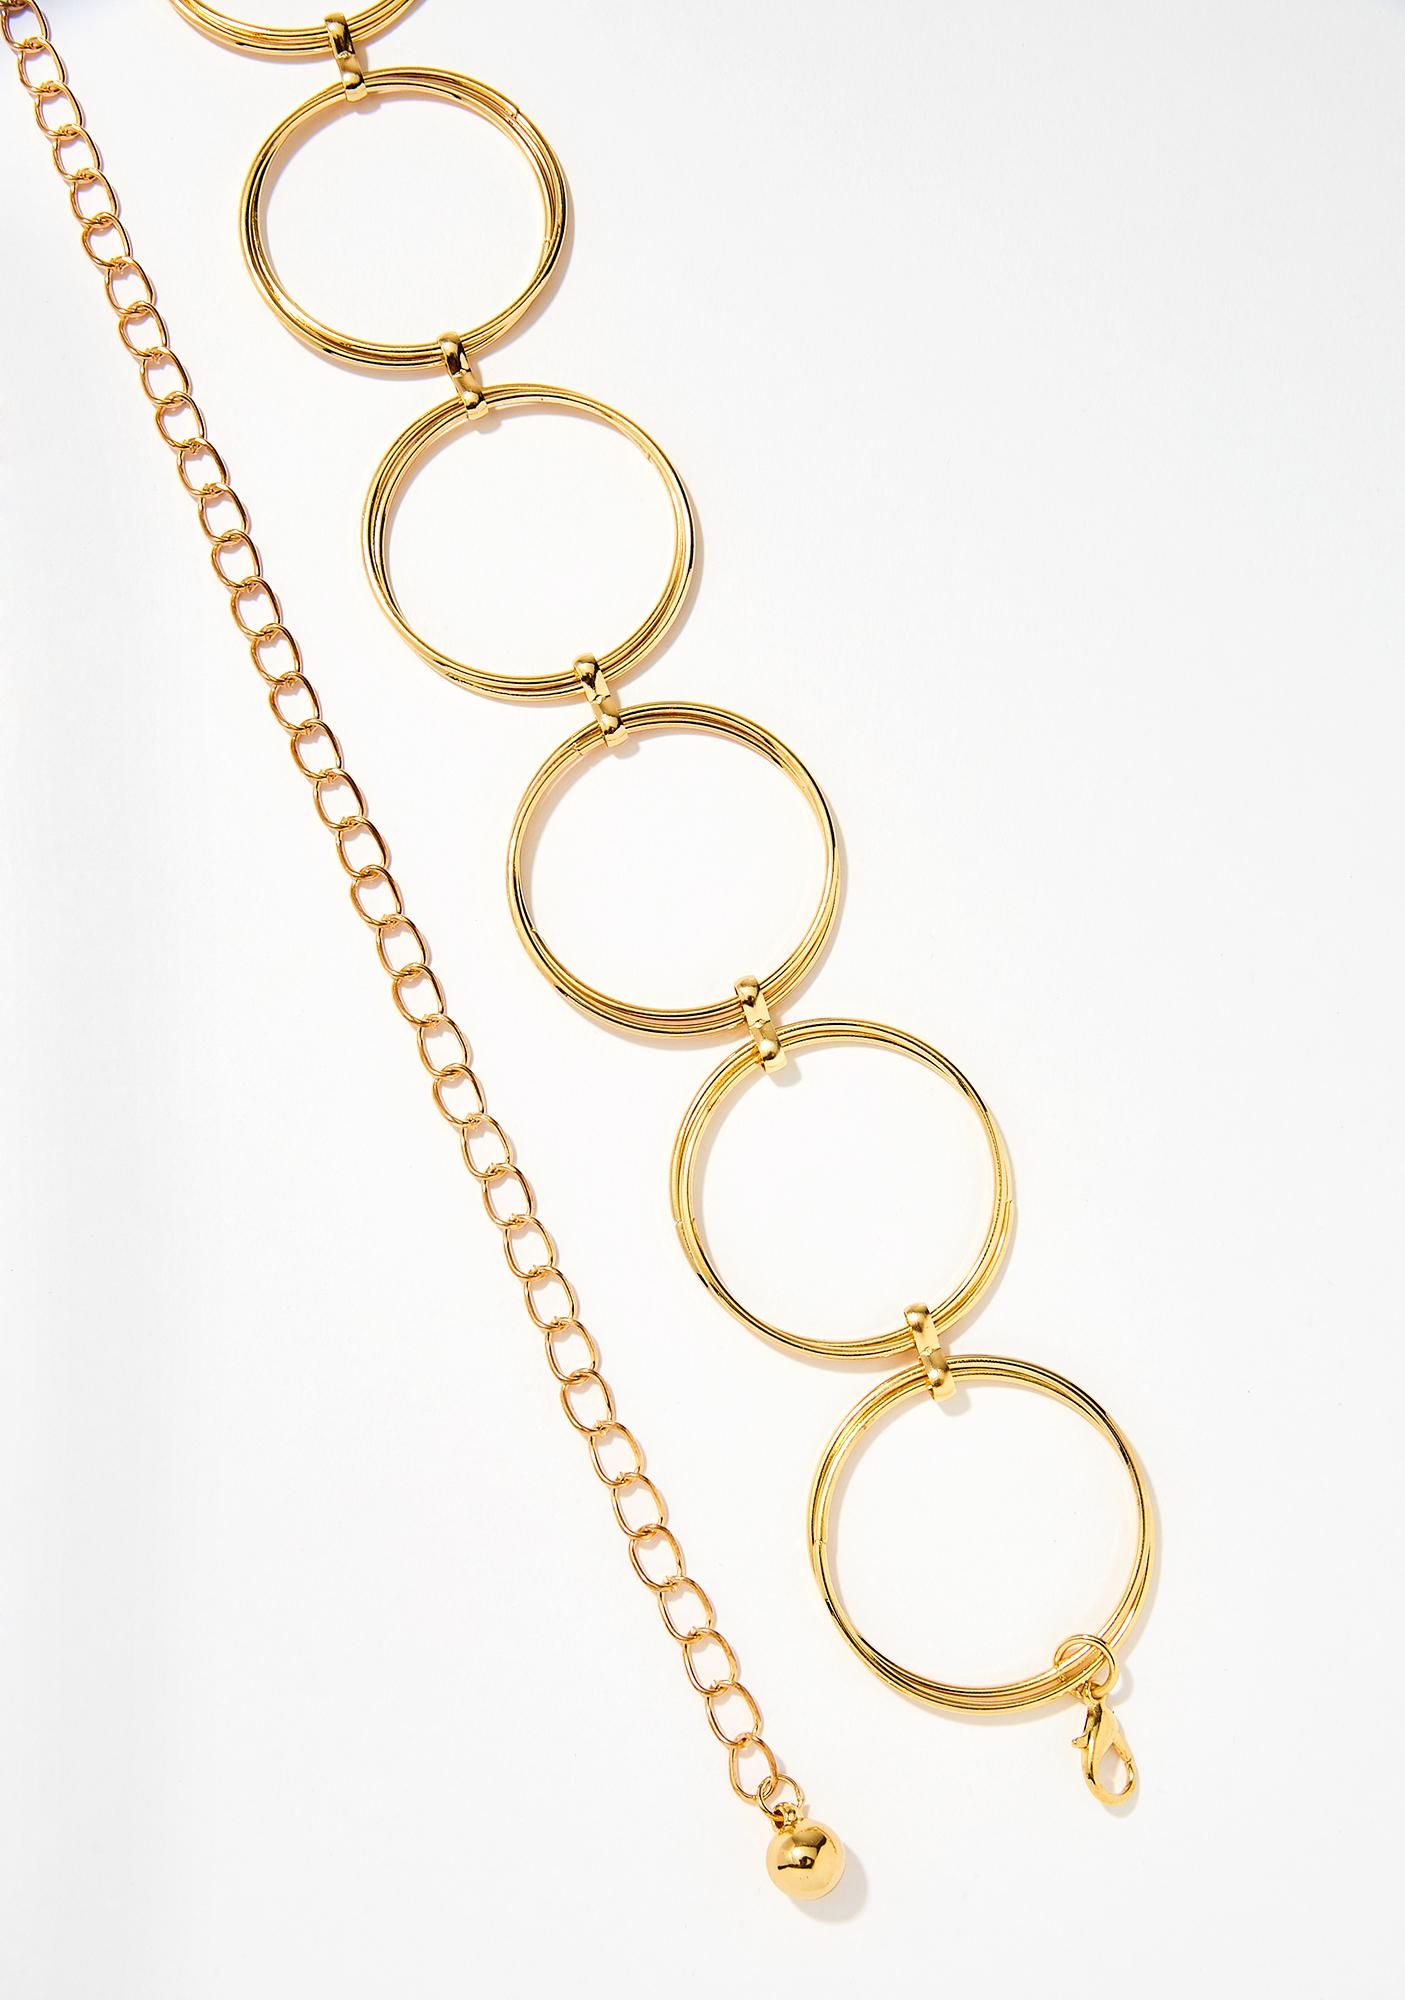 Miami Mami O-Ring Belt Chain